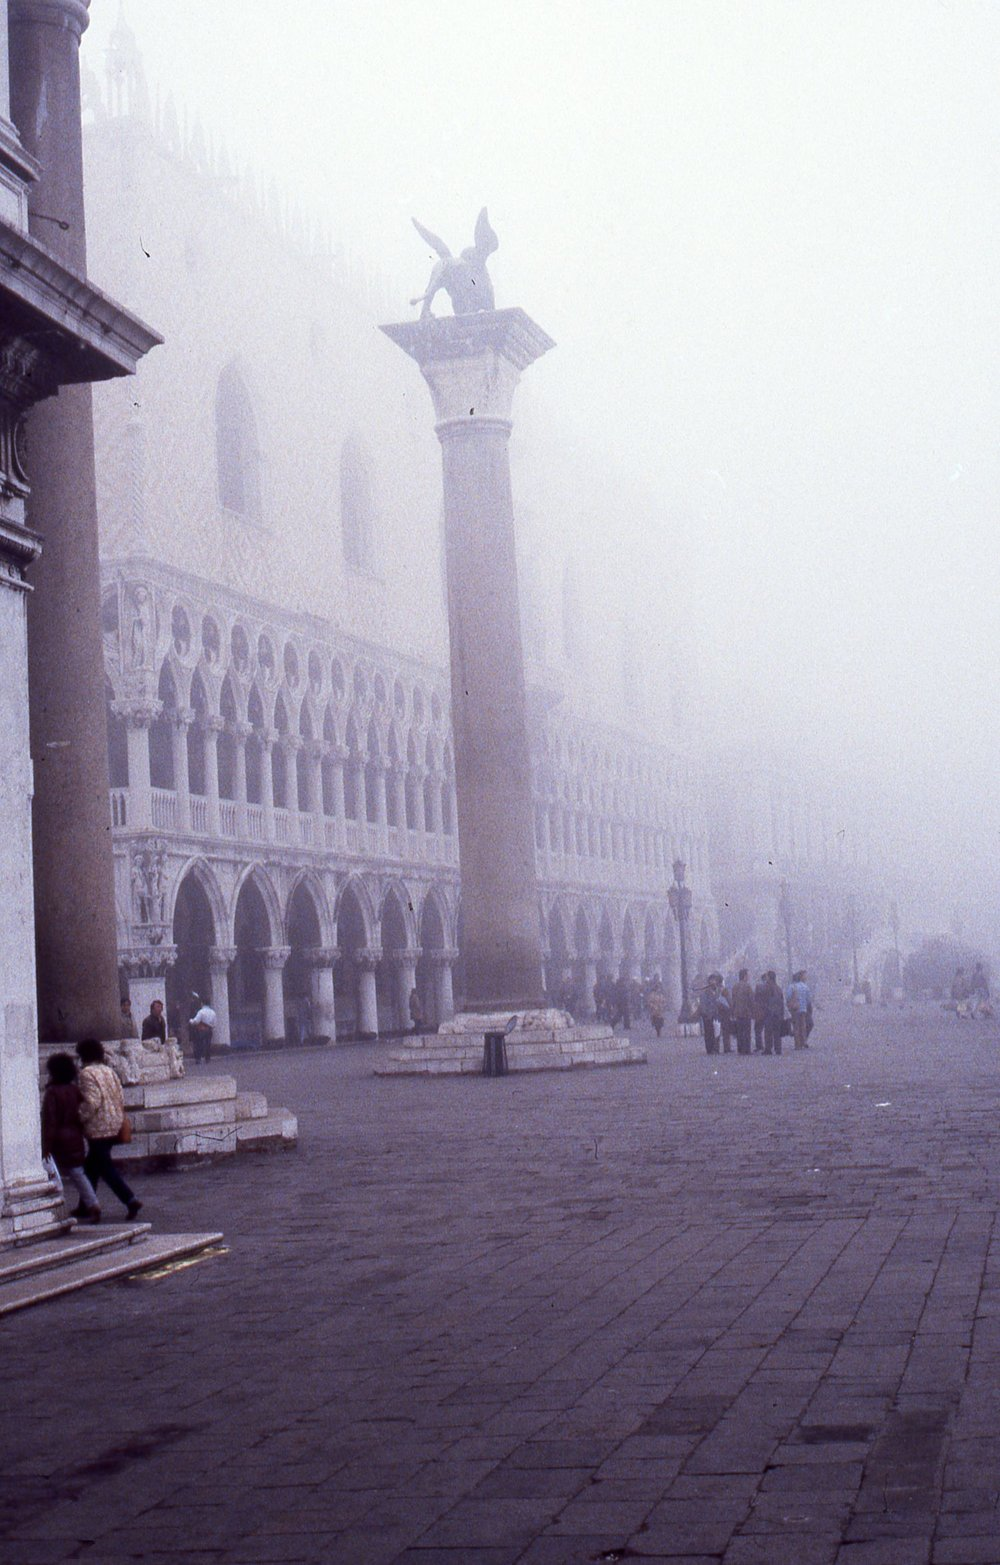 Venice | Venice in winter | Doge's Palace | photo sandrine cohen